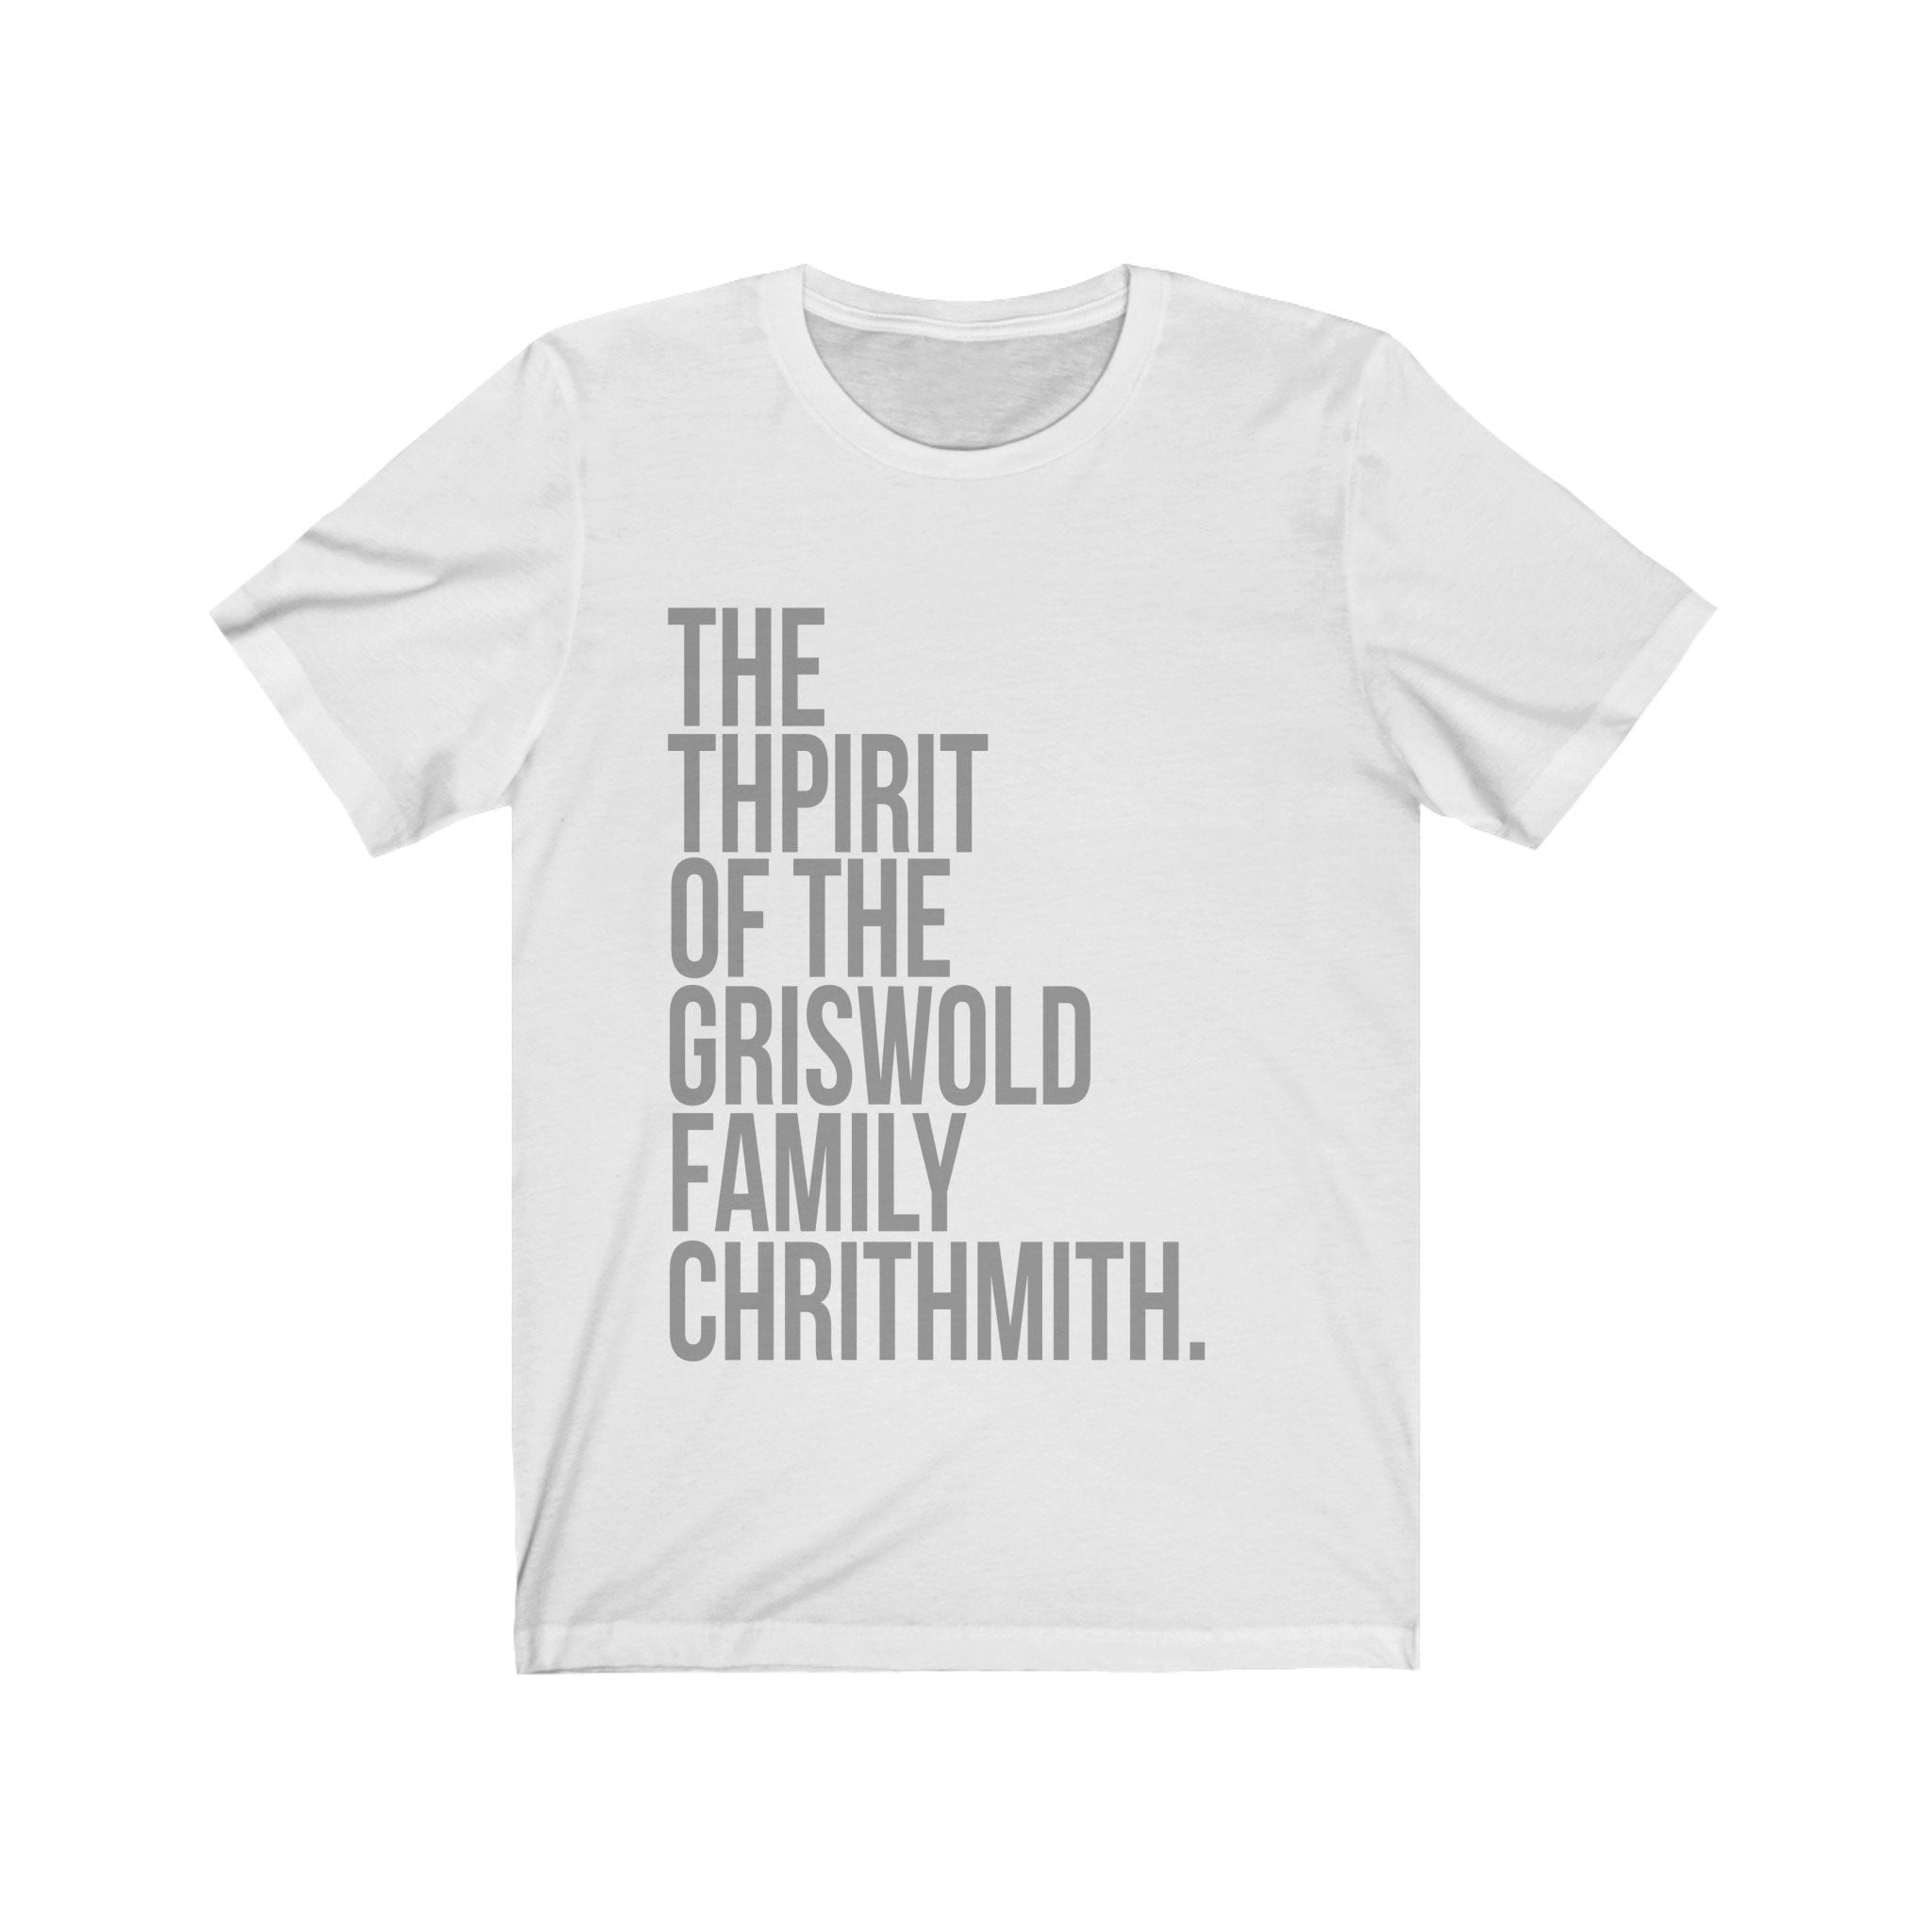 National Lampoons Christmas Vacation Shirt - The Thpirit of the Griswold Family Chrithmith -  Long Sleeve Christmas Shirts